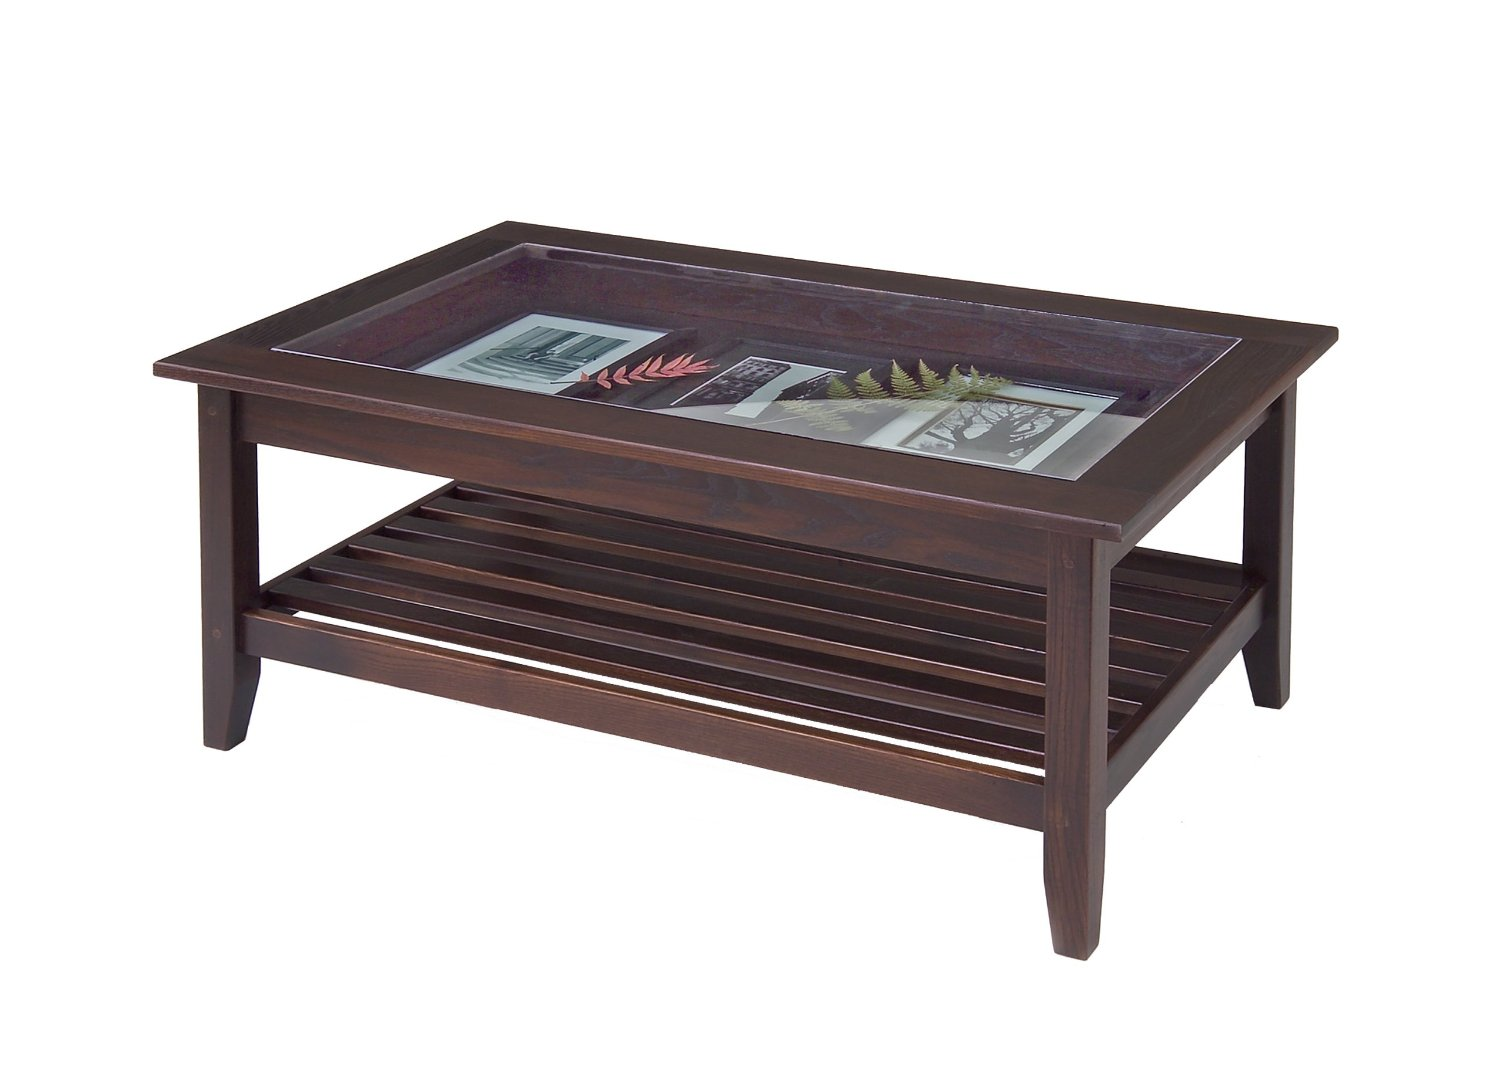 Dark Wood Coffee Table with Full-Width Glass-Top Display Case